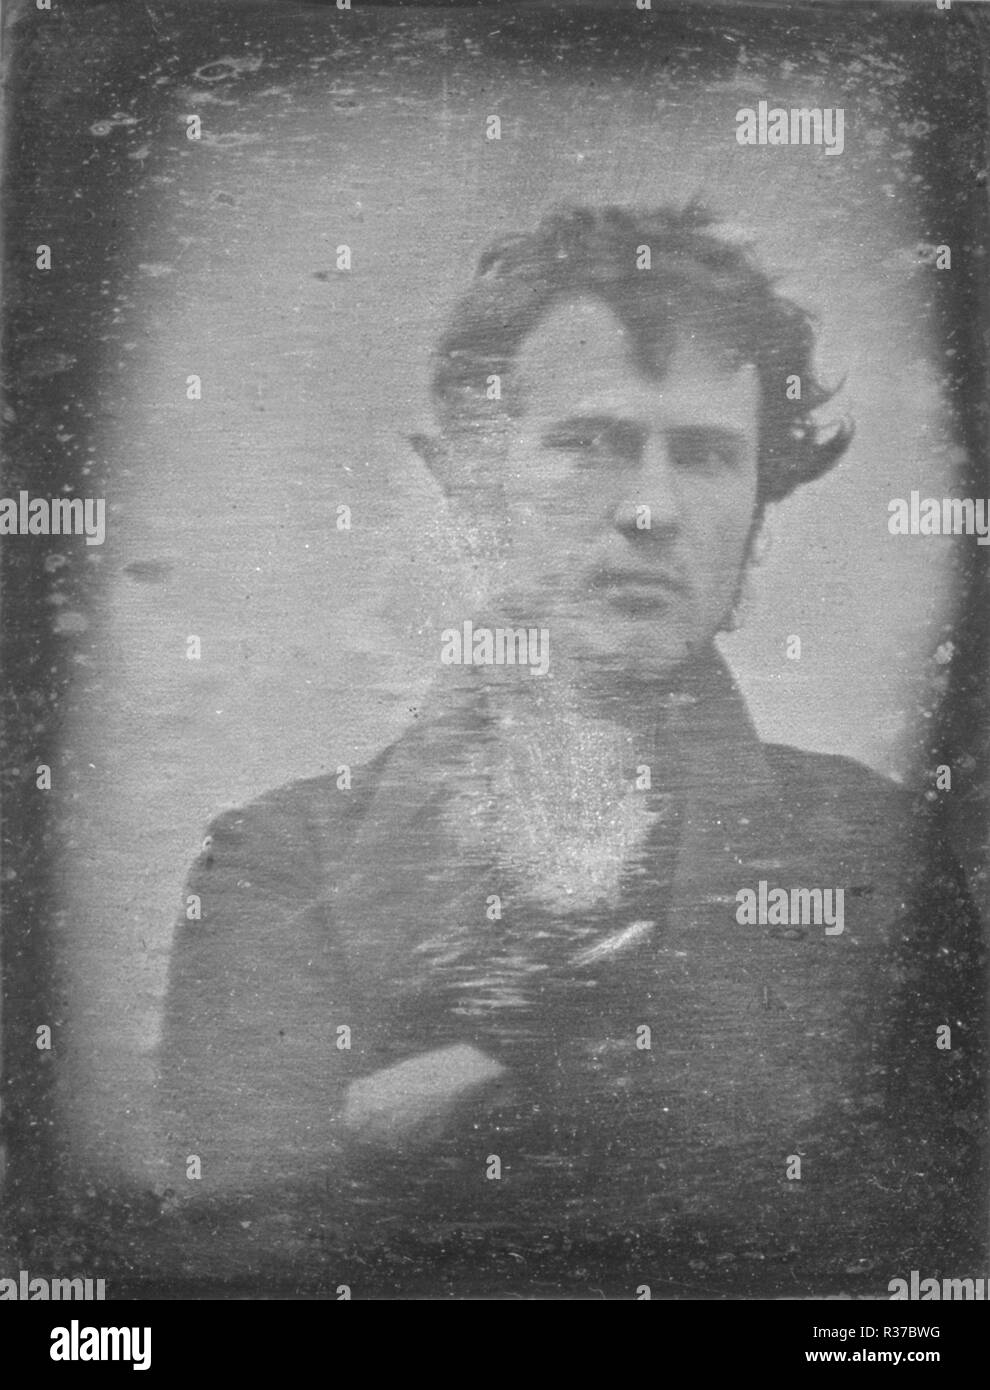 The first photographic portrait image of a human ever produced. Robert Cornelius, self-portrait - Stock Image